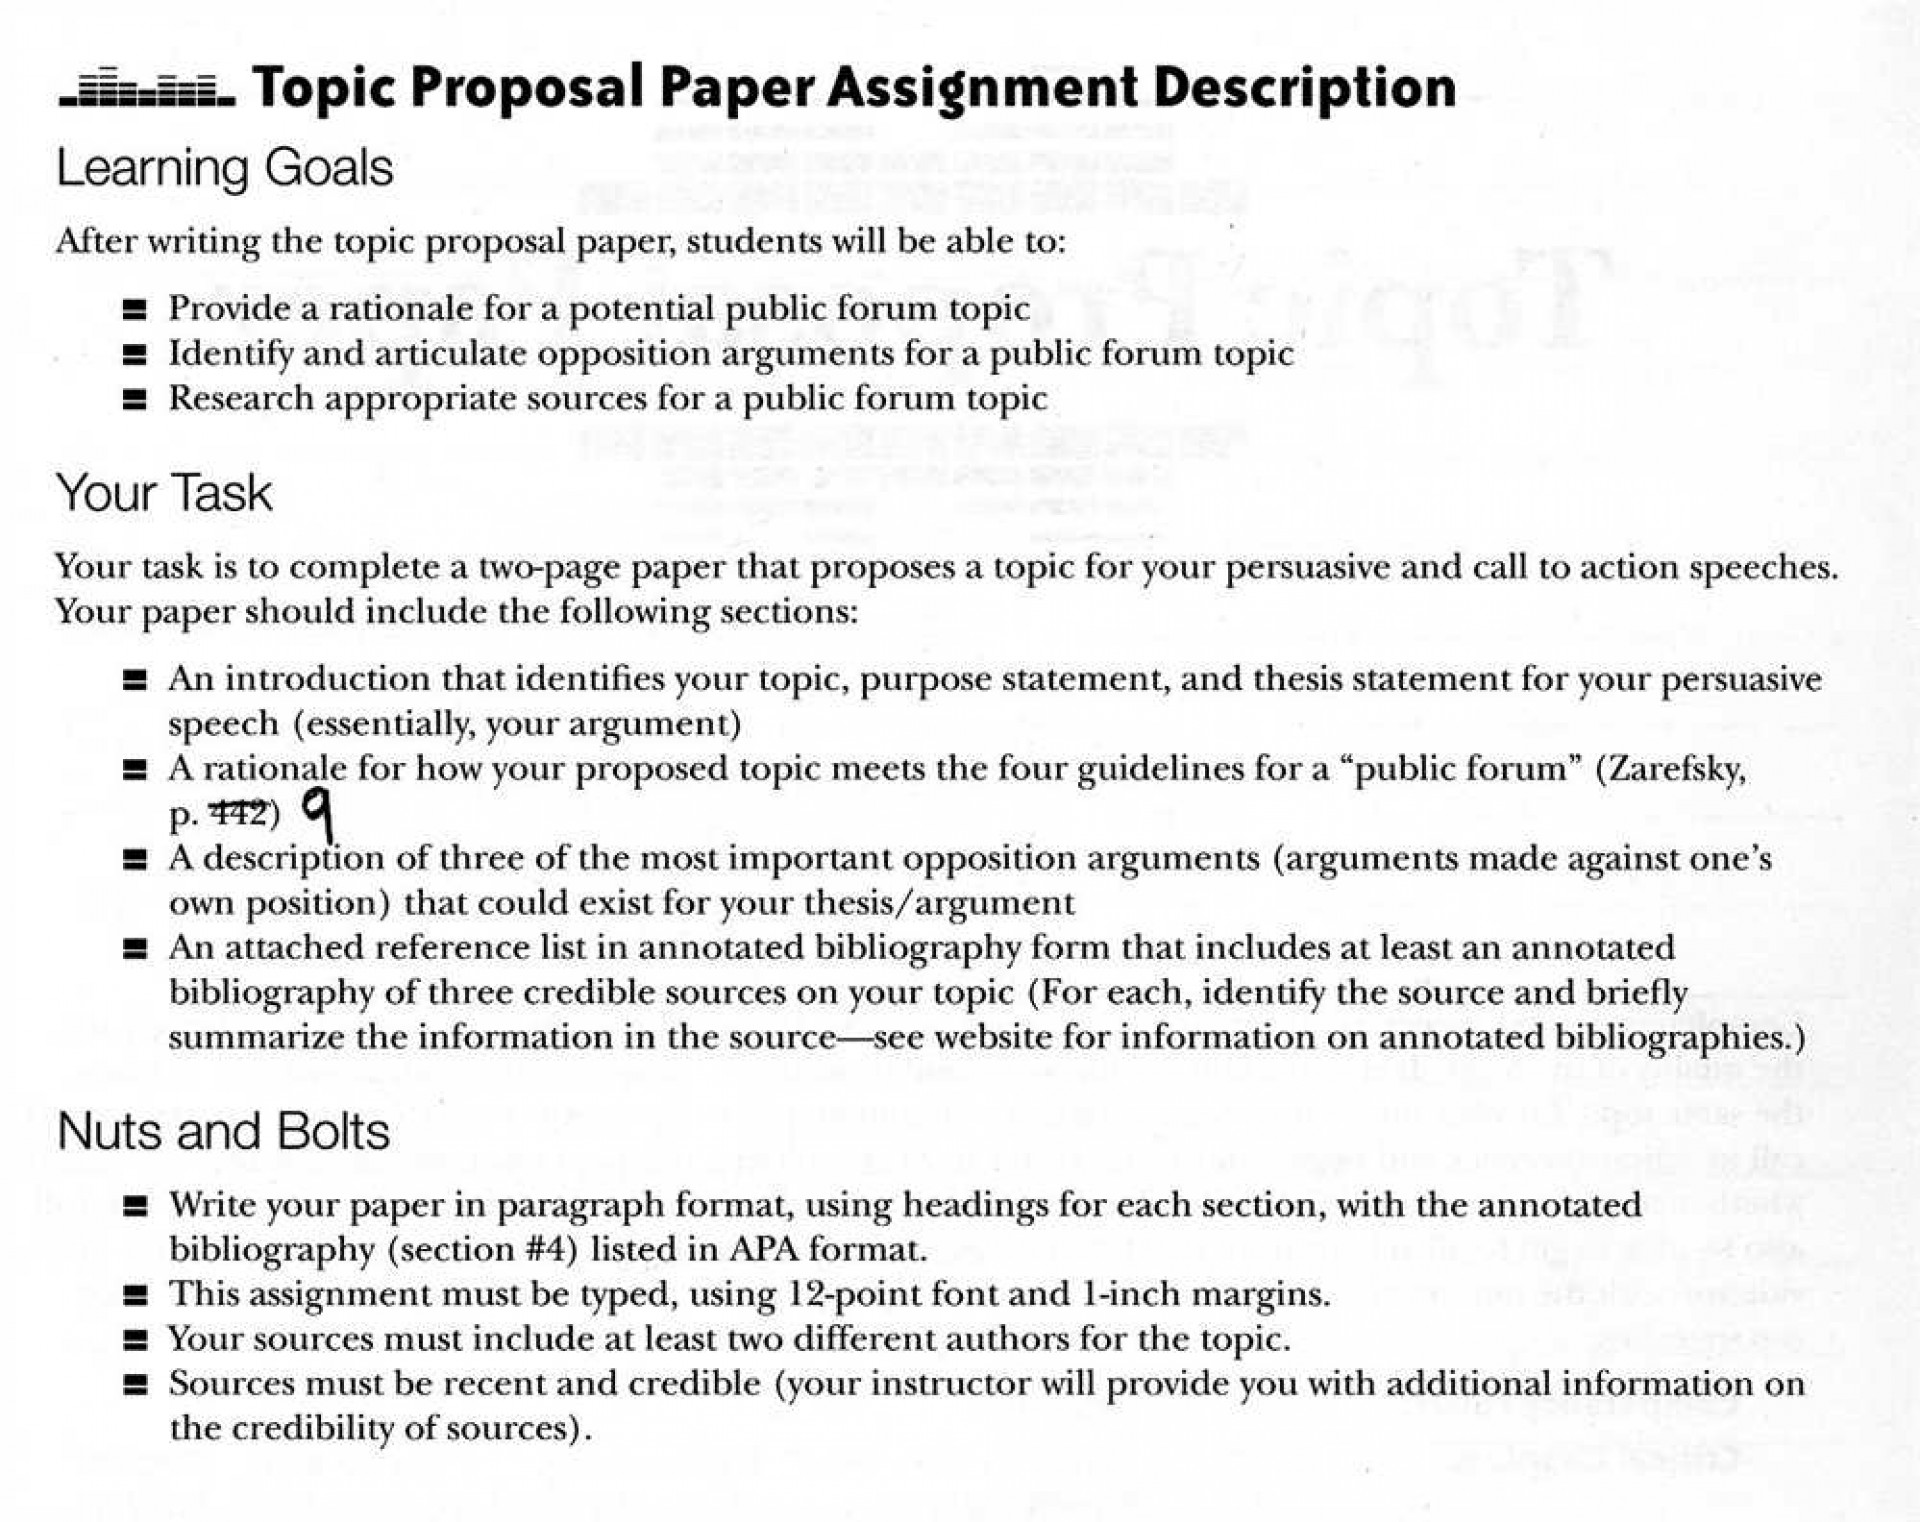 010 Ecology Research 8841976 Topics For Arguments Best Argument Papers Medical Argumentative Paper Controversial 1920